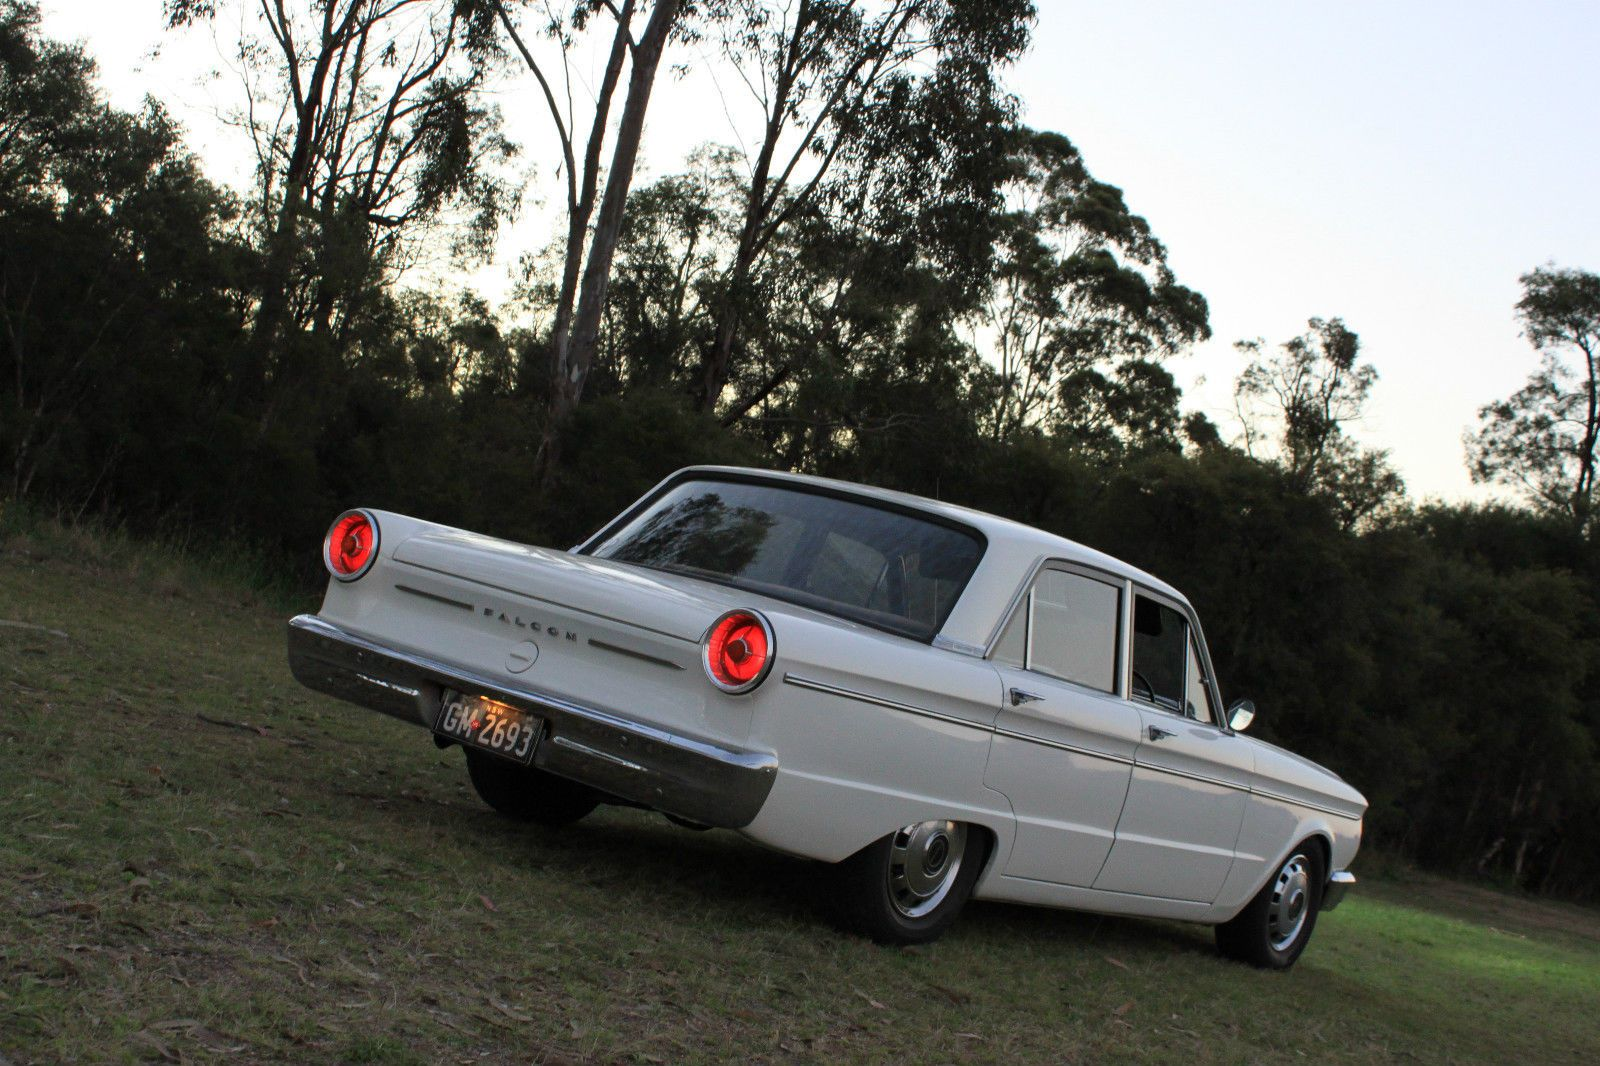 1961 ford falcon for sale racingjunk classifieds - 1961 Ford Falcon For Sale Racingjunk Classifieds 59